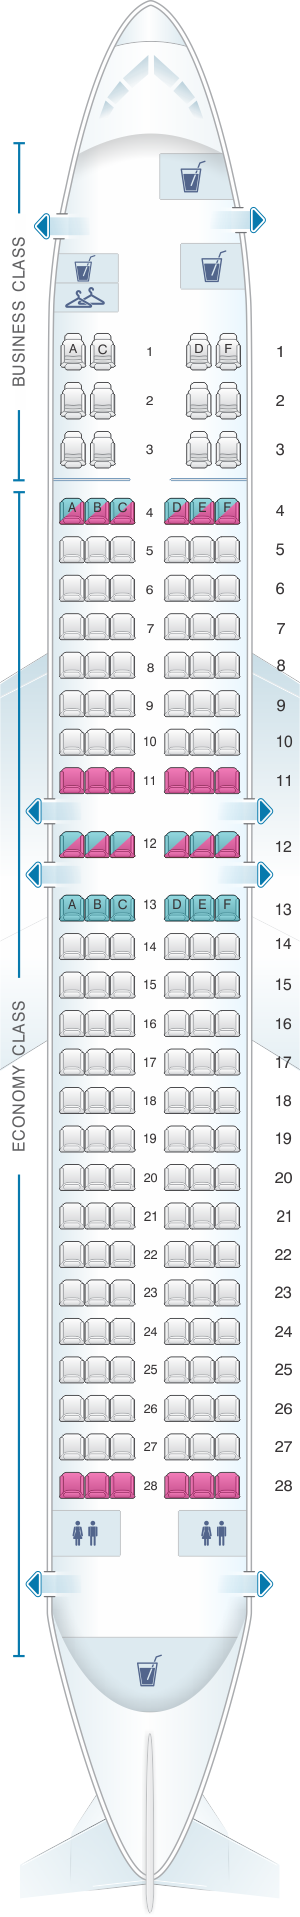 Seat map for MIAT Mongolian Airlines Boeing B737 800